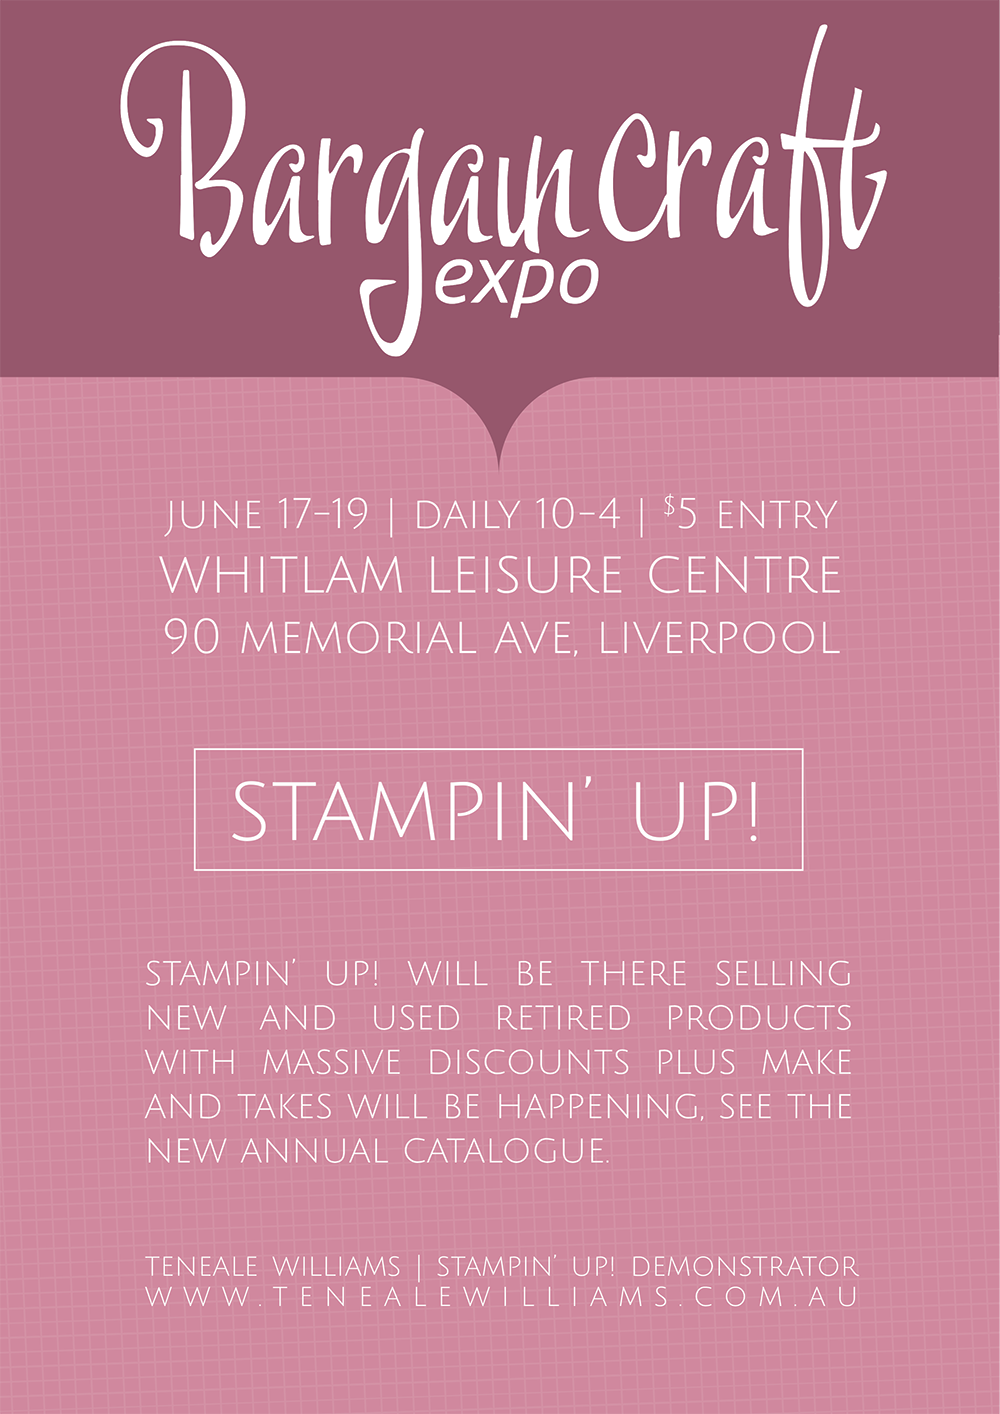 Bargain Craft Show | June 17 - 19 Liverpool NSW | Stampin' Up! selling retired items